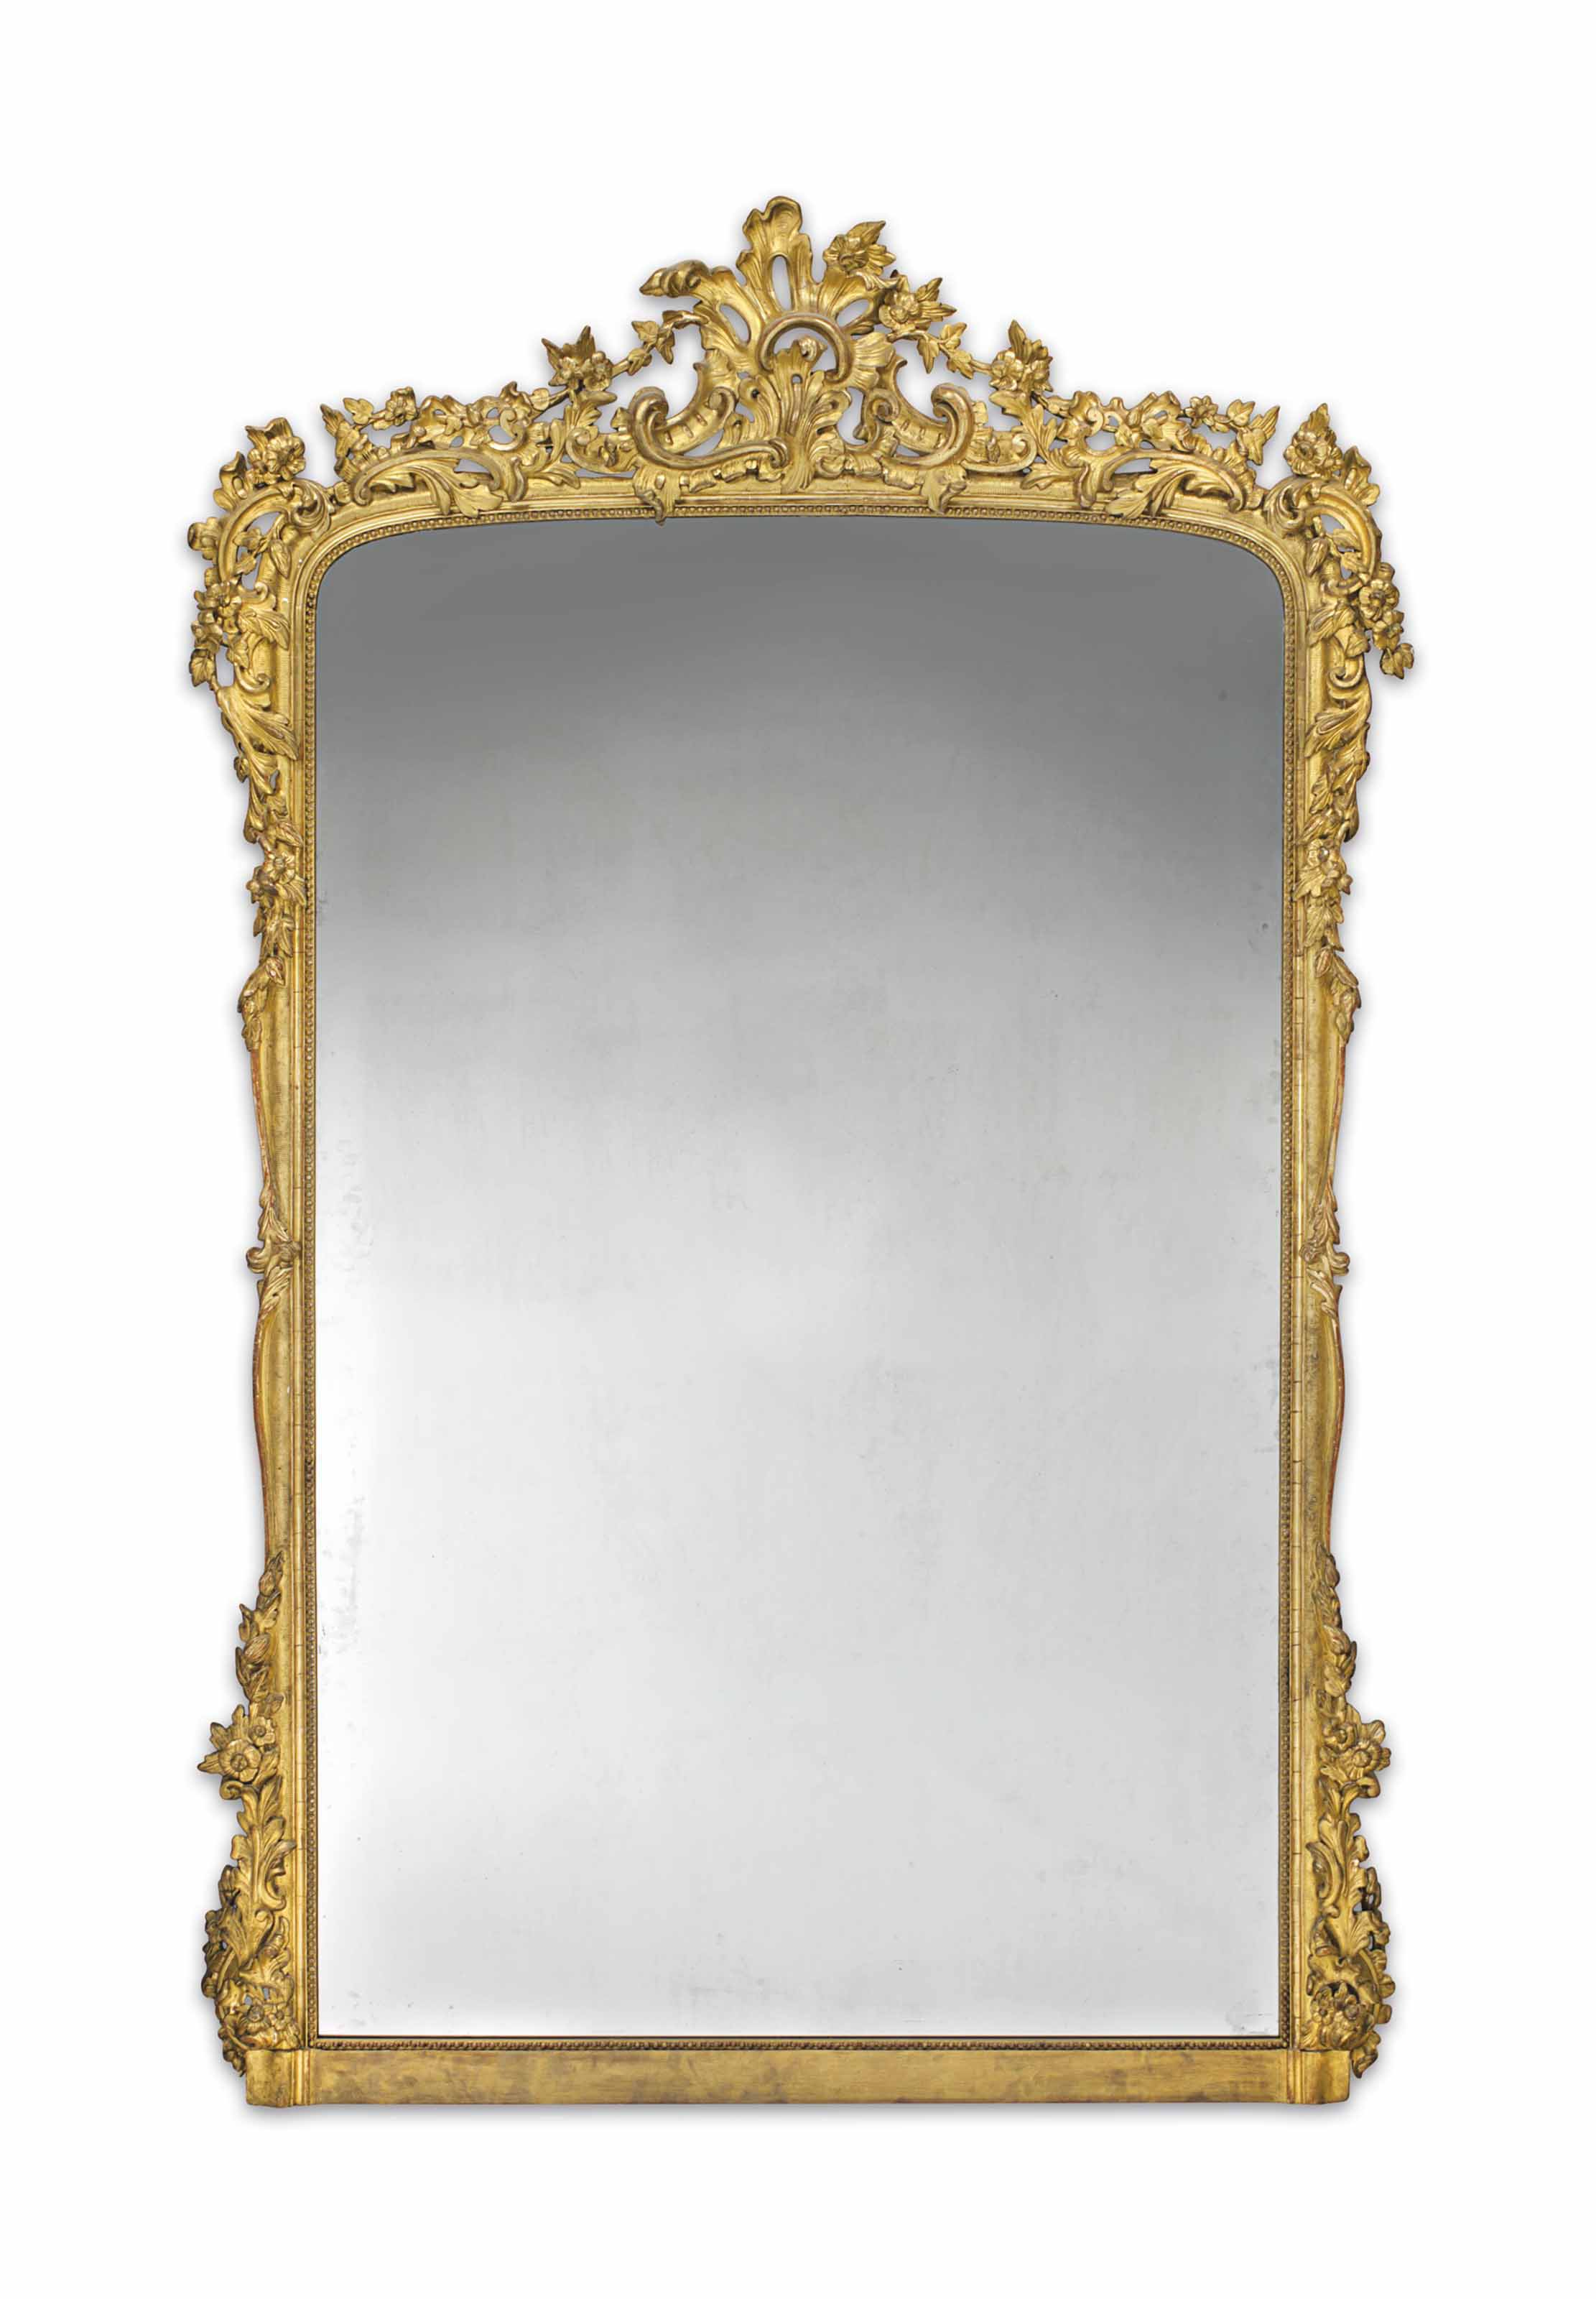 A FRENCH GILTWOOD OVER-MANTEL